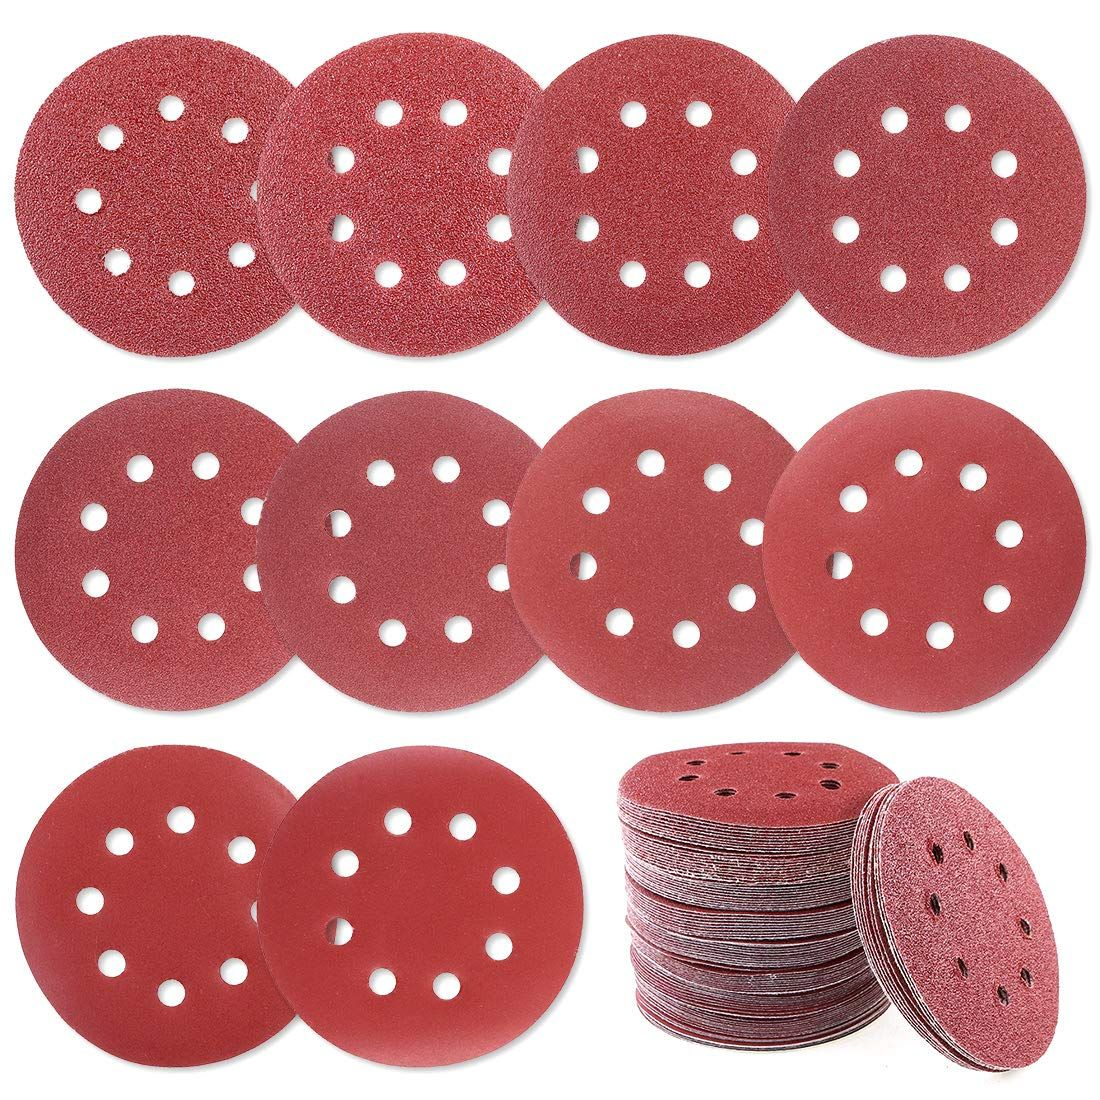 Pin On Abrasive Wheels And Discs